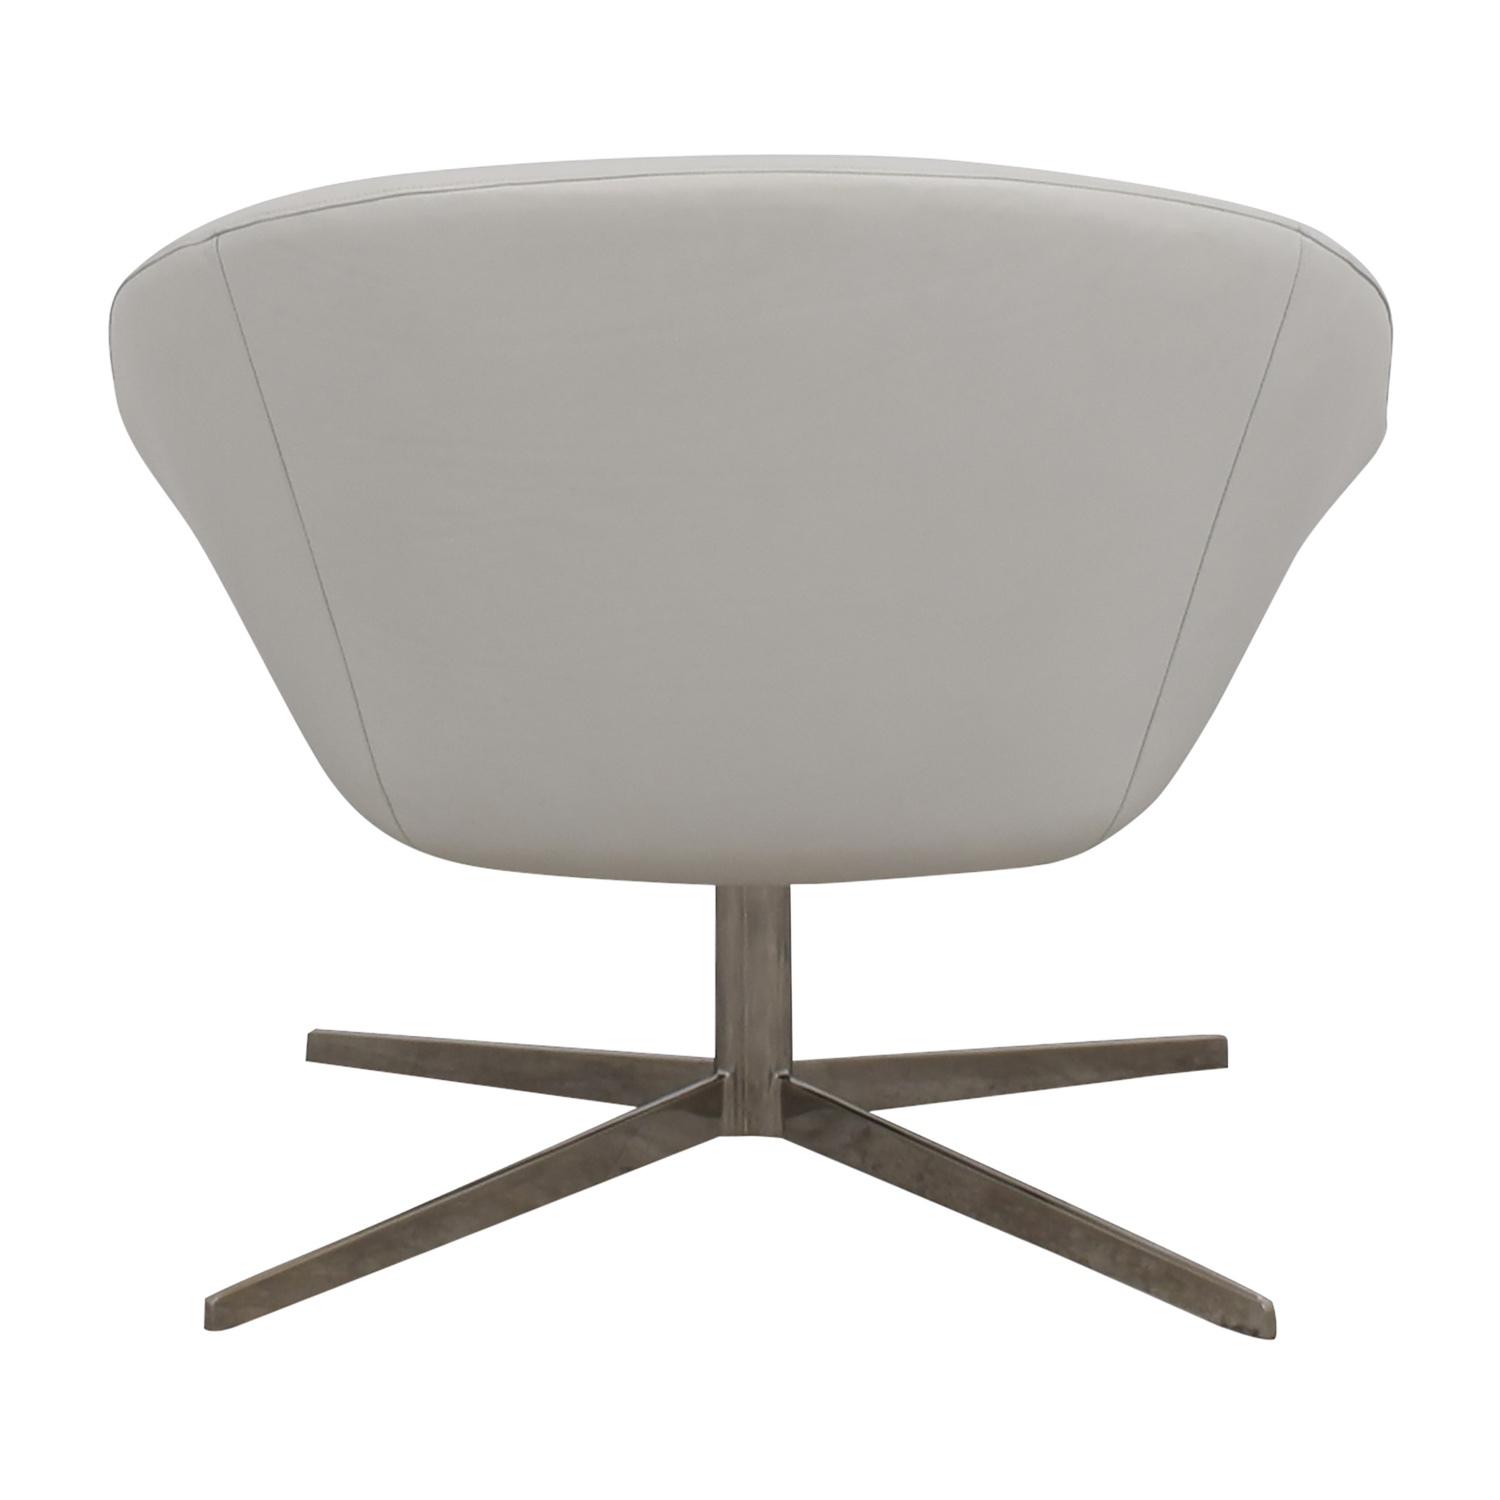 Benhardt Bernhardt Remy Fundamental White Chair discount